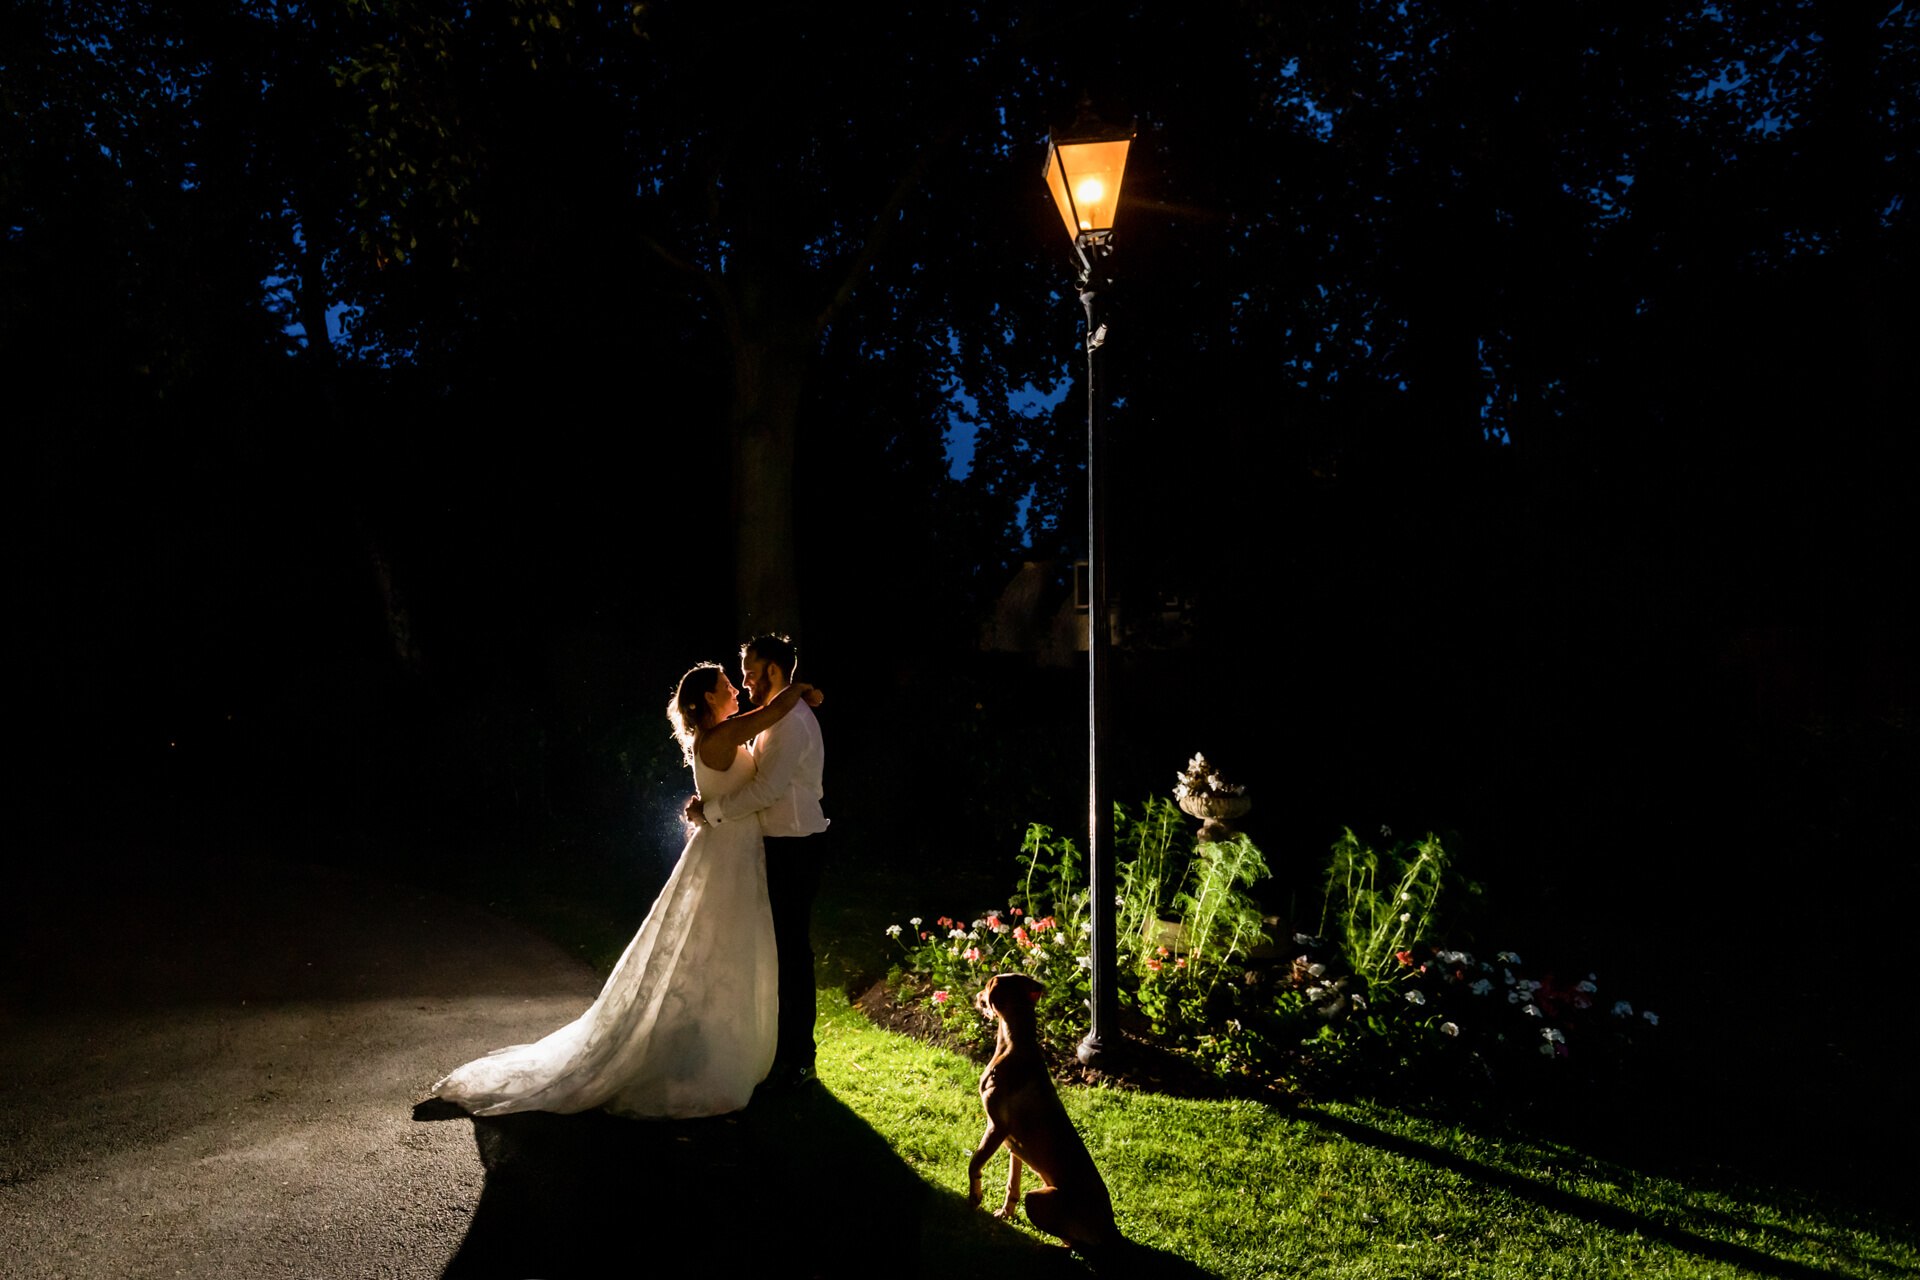 couple hugging in front of a lit lamppost at night with their pet dog